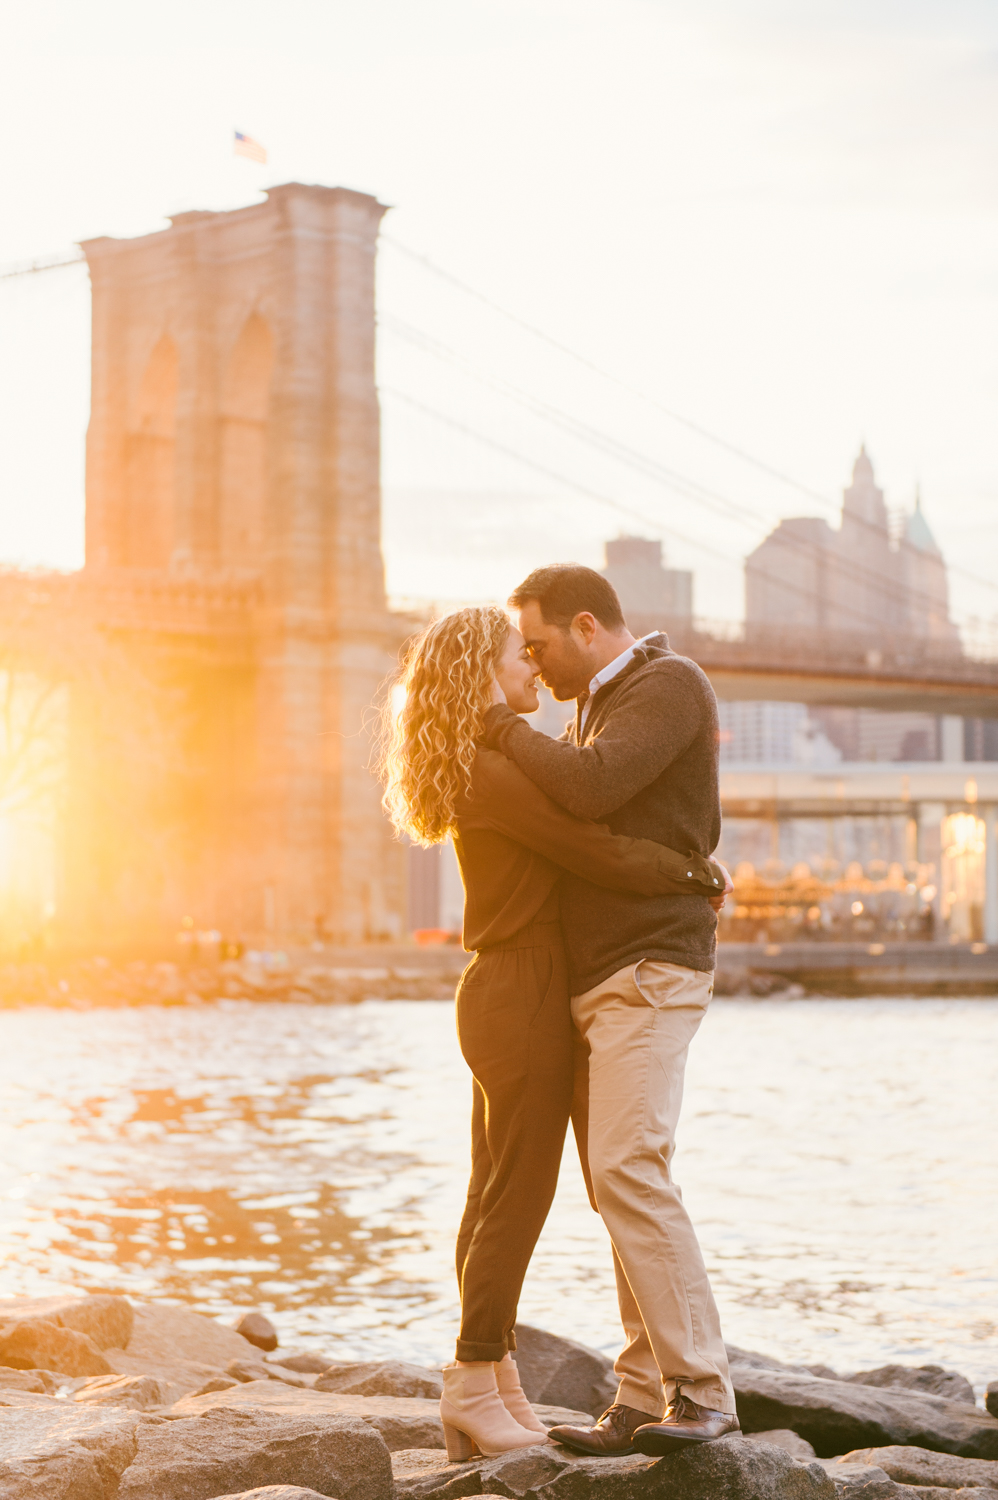 DUMBO.BrooklynBridgePark.FineArtWeddingPhotographer.KatHarris14.jpg